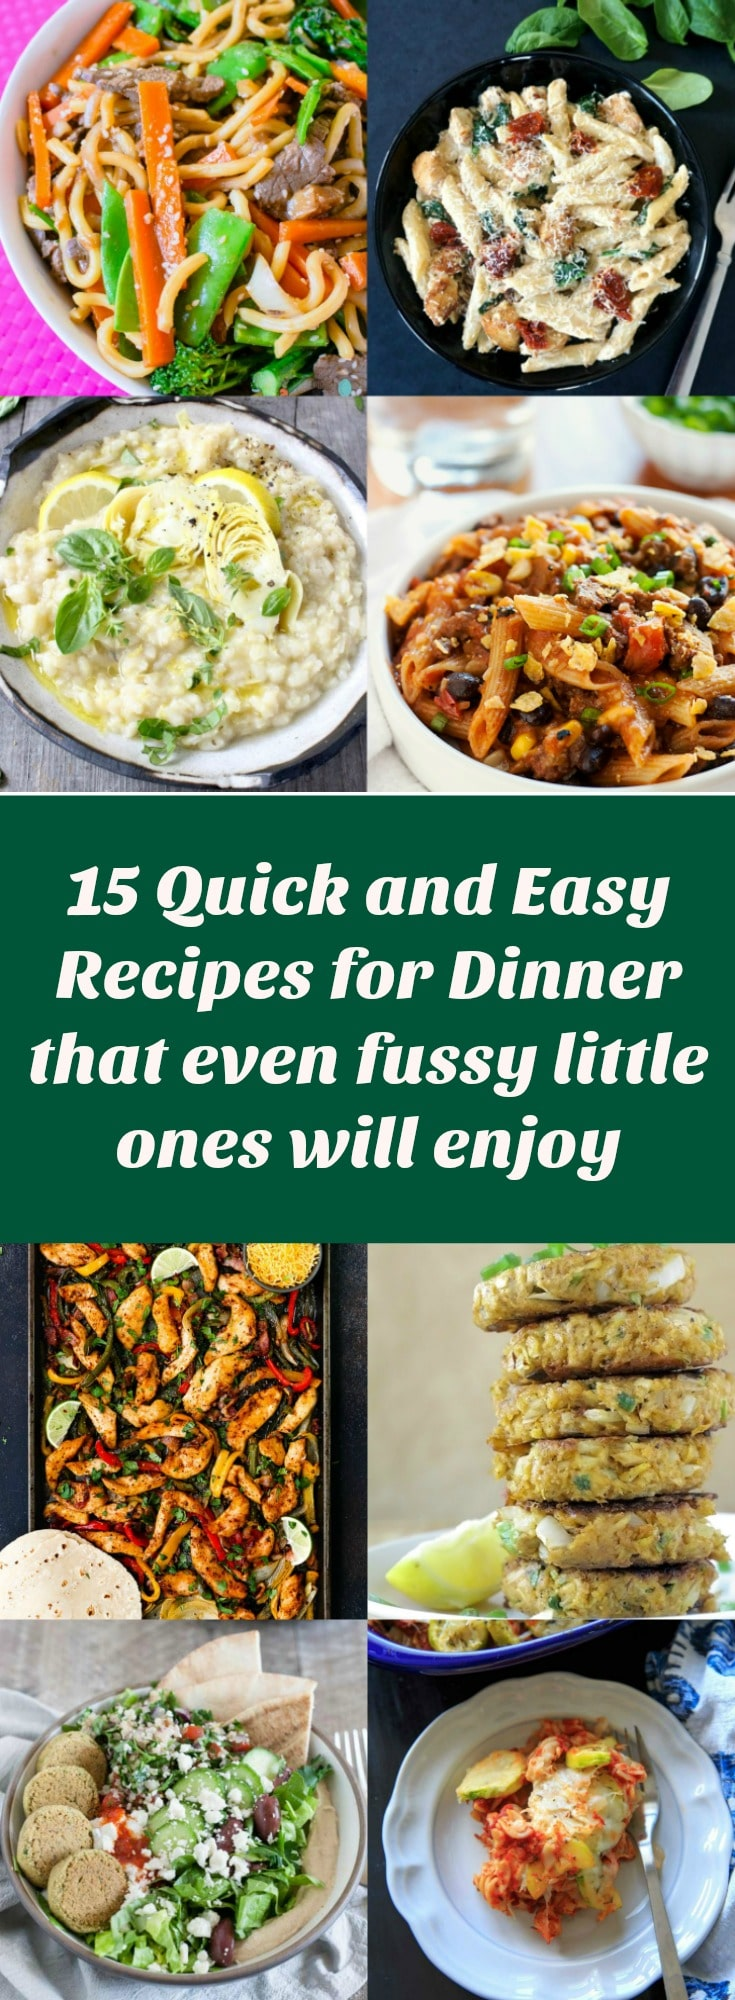 15 Easy Natural Make Up Tutorials 2014 For Beginners: 15 Quick And Easy Recipes For Dinner That Even Fussy